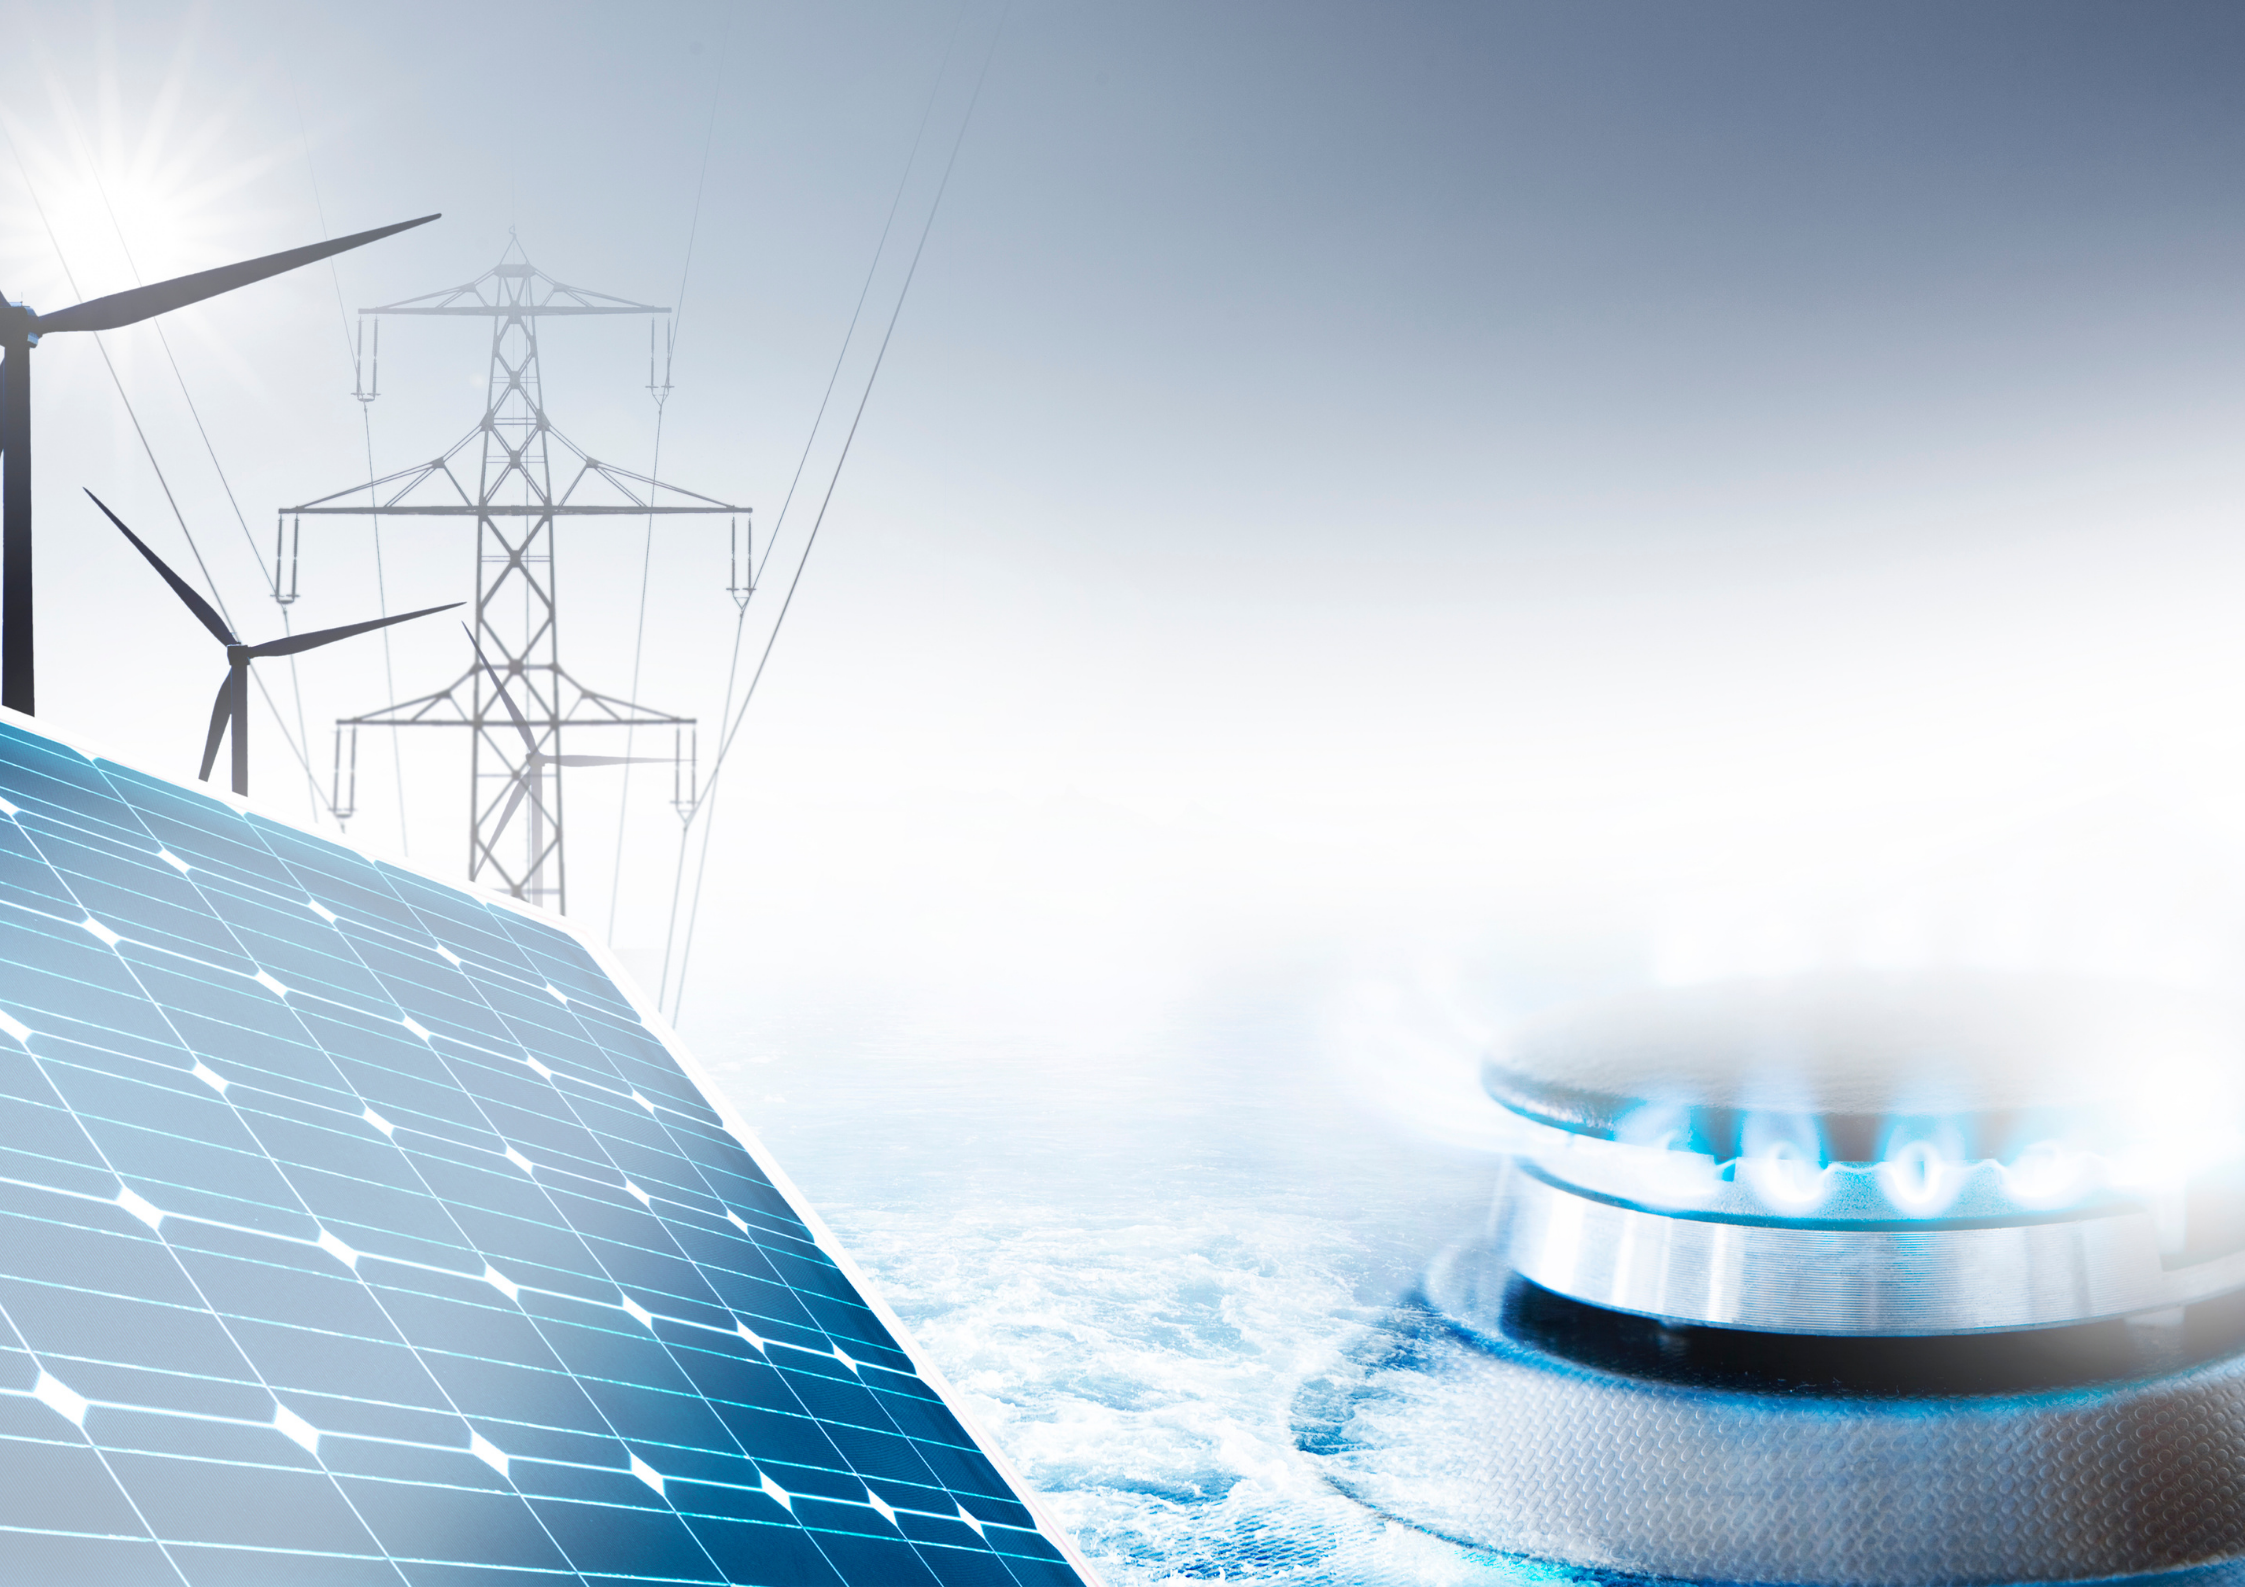 New technologies in energy: The price and value of energy